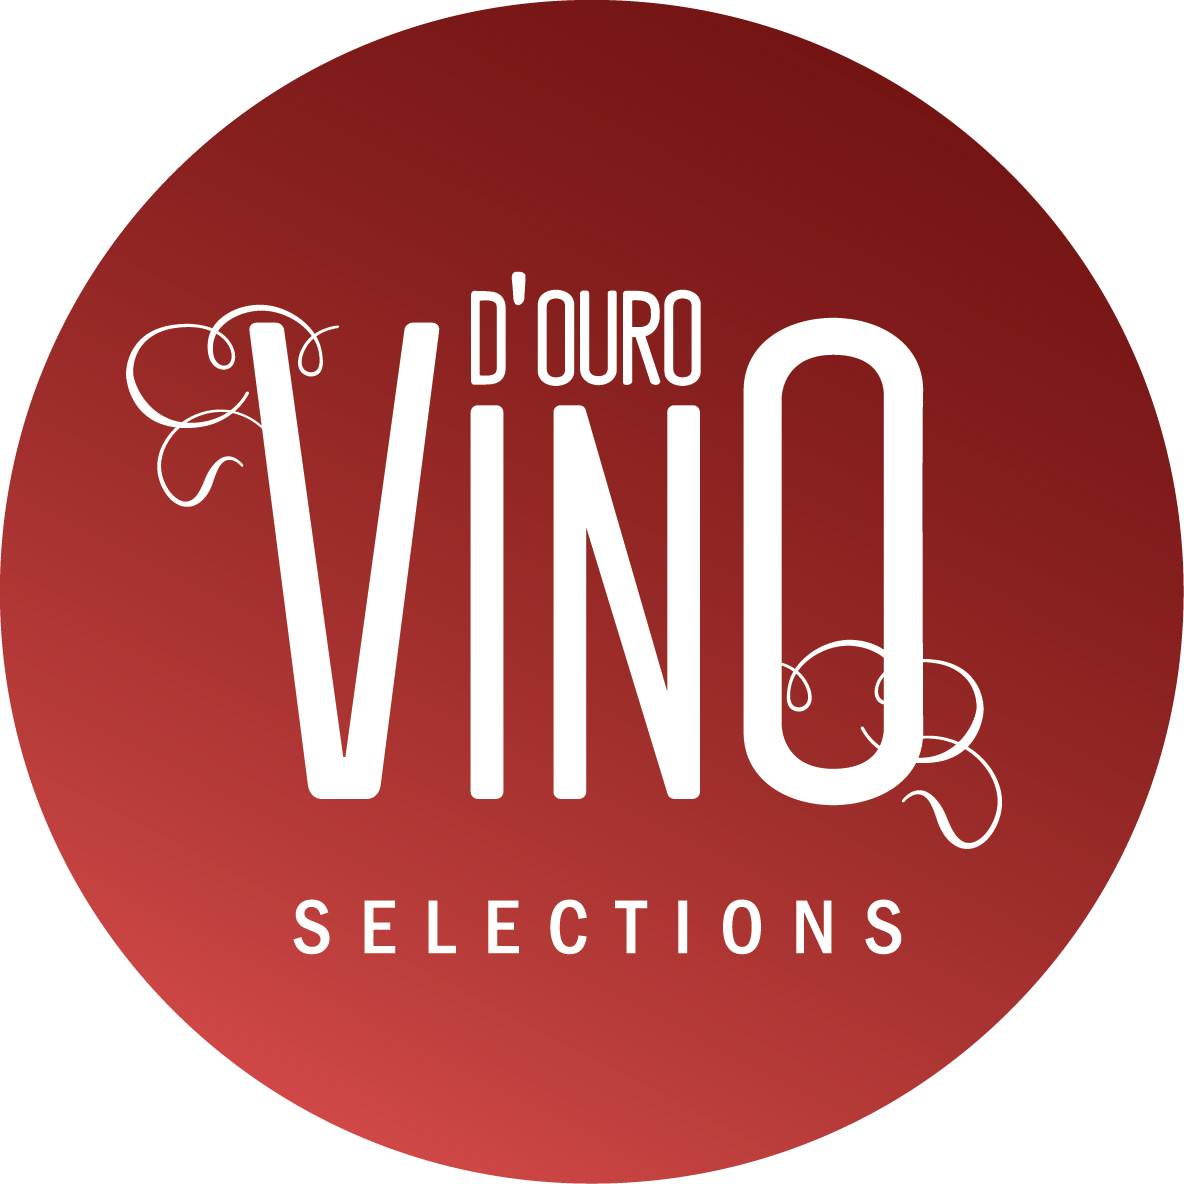 D'Ouro Vino Selections